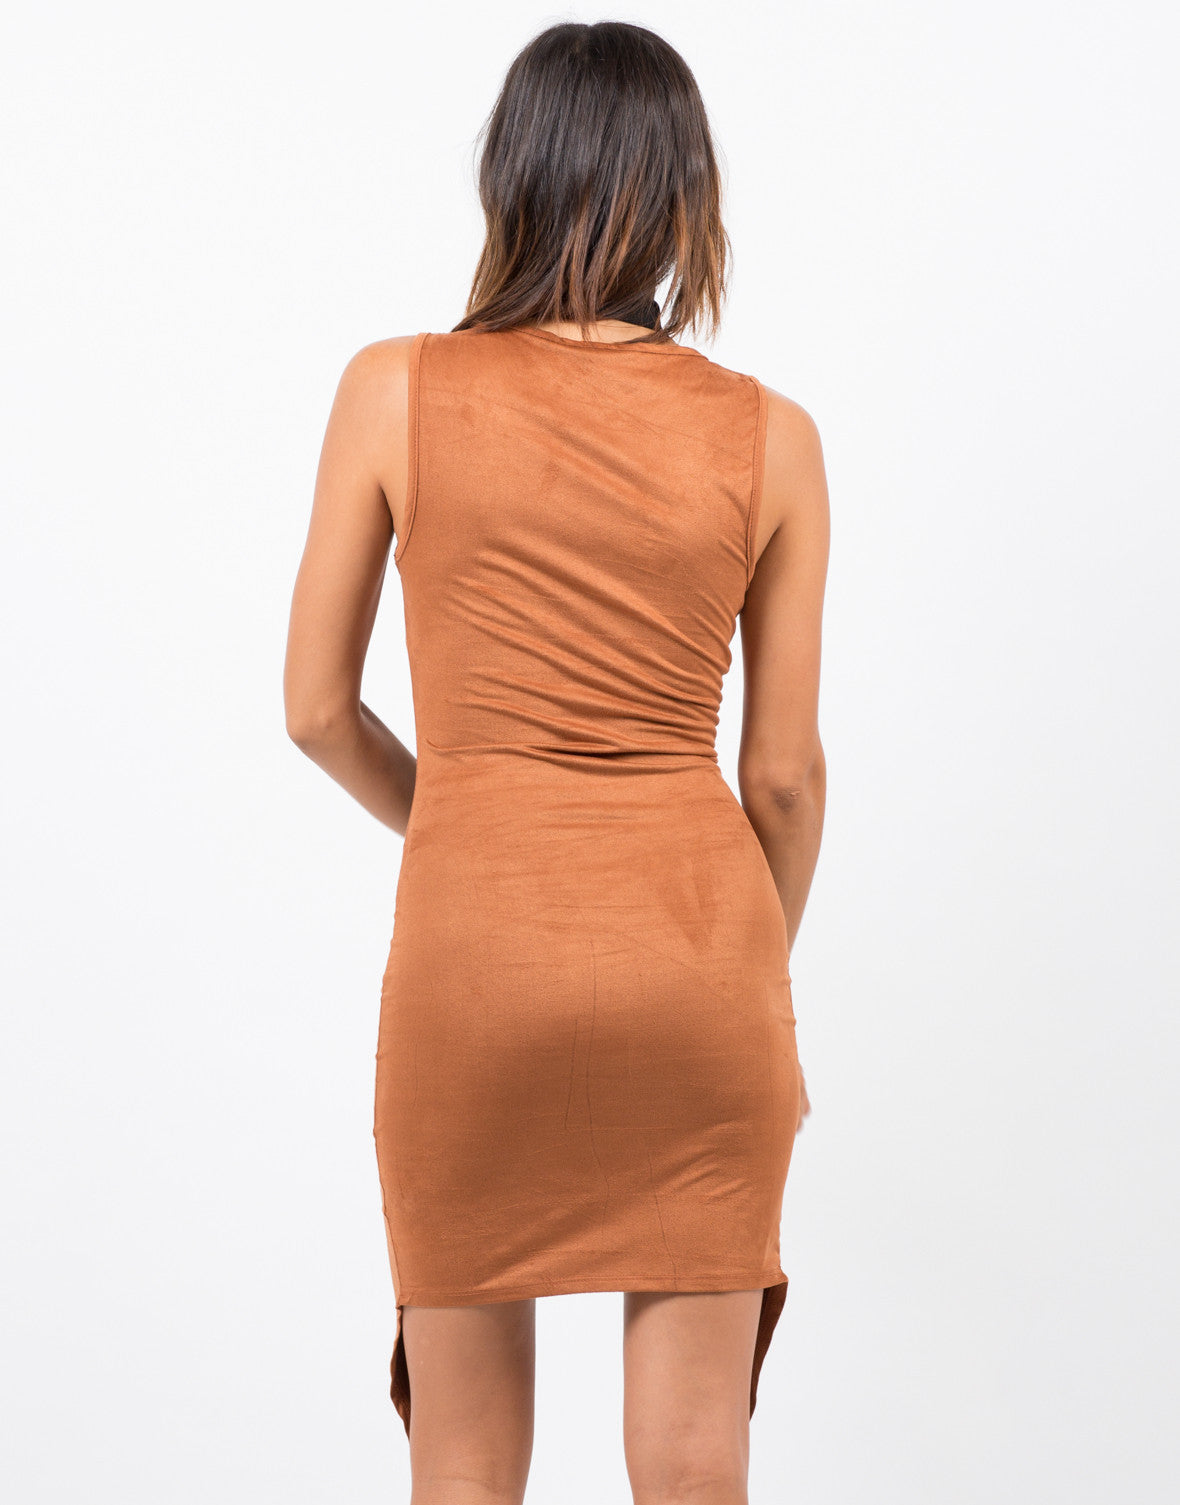 Back View of Button Front Suede Dress